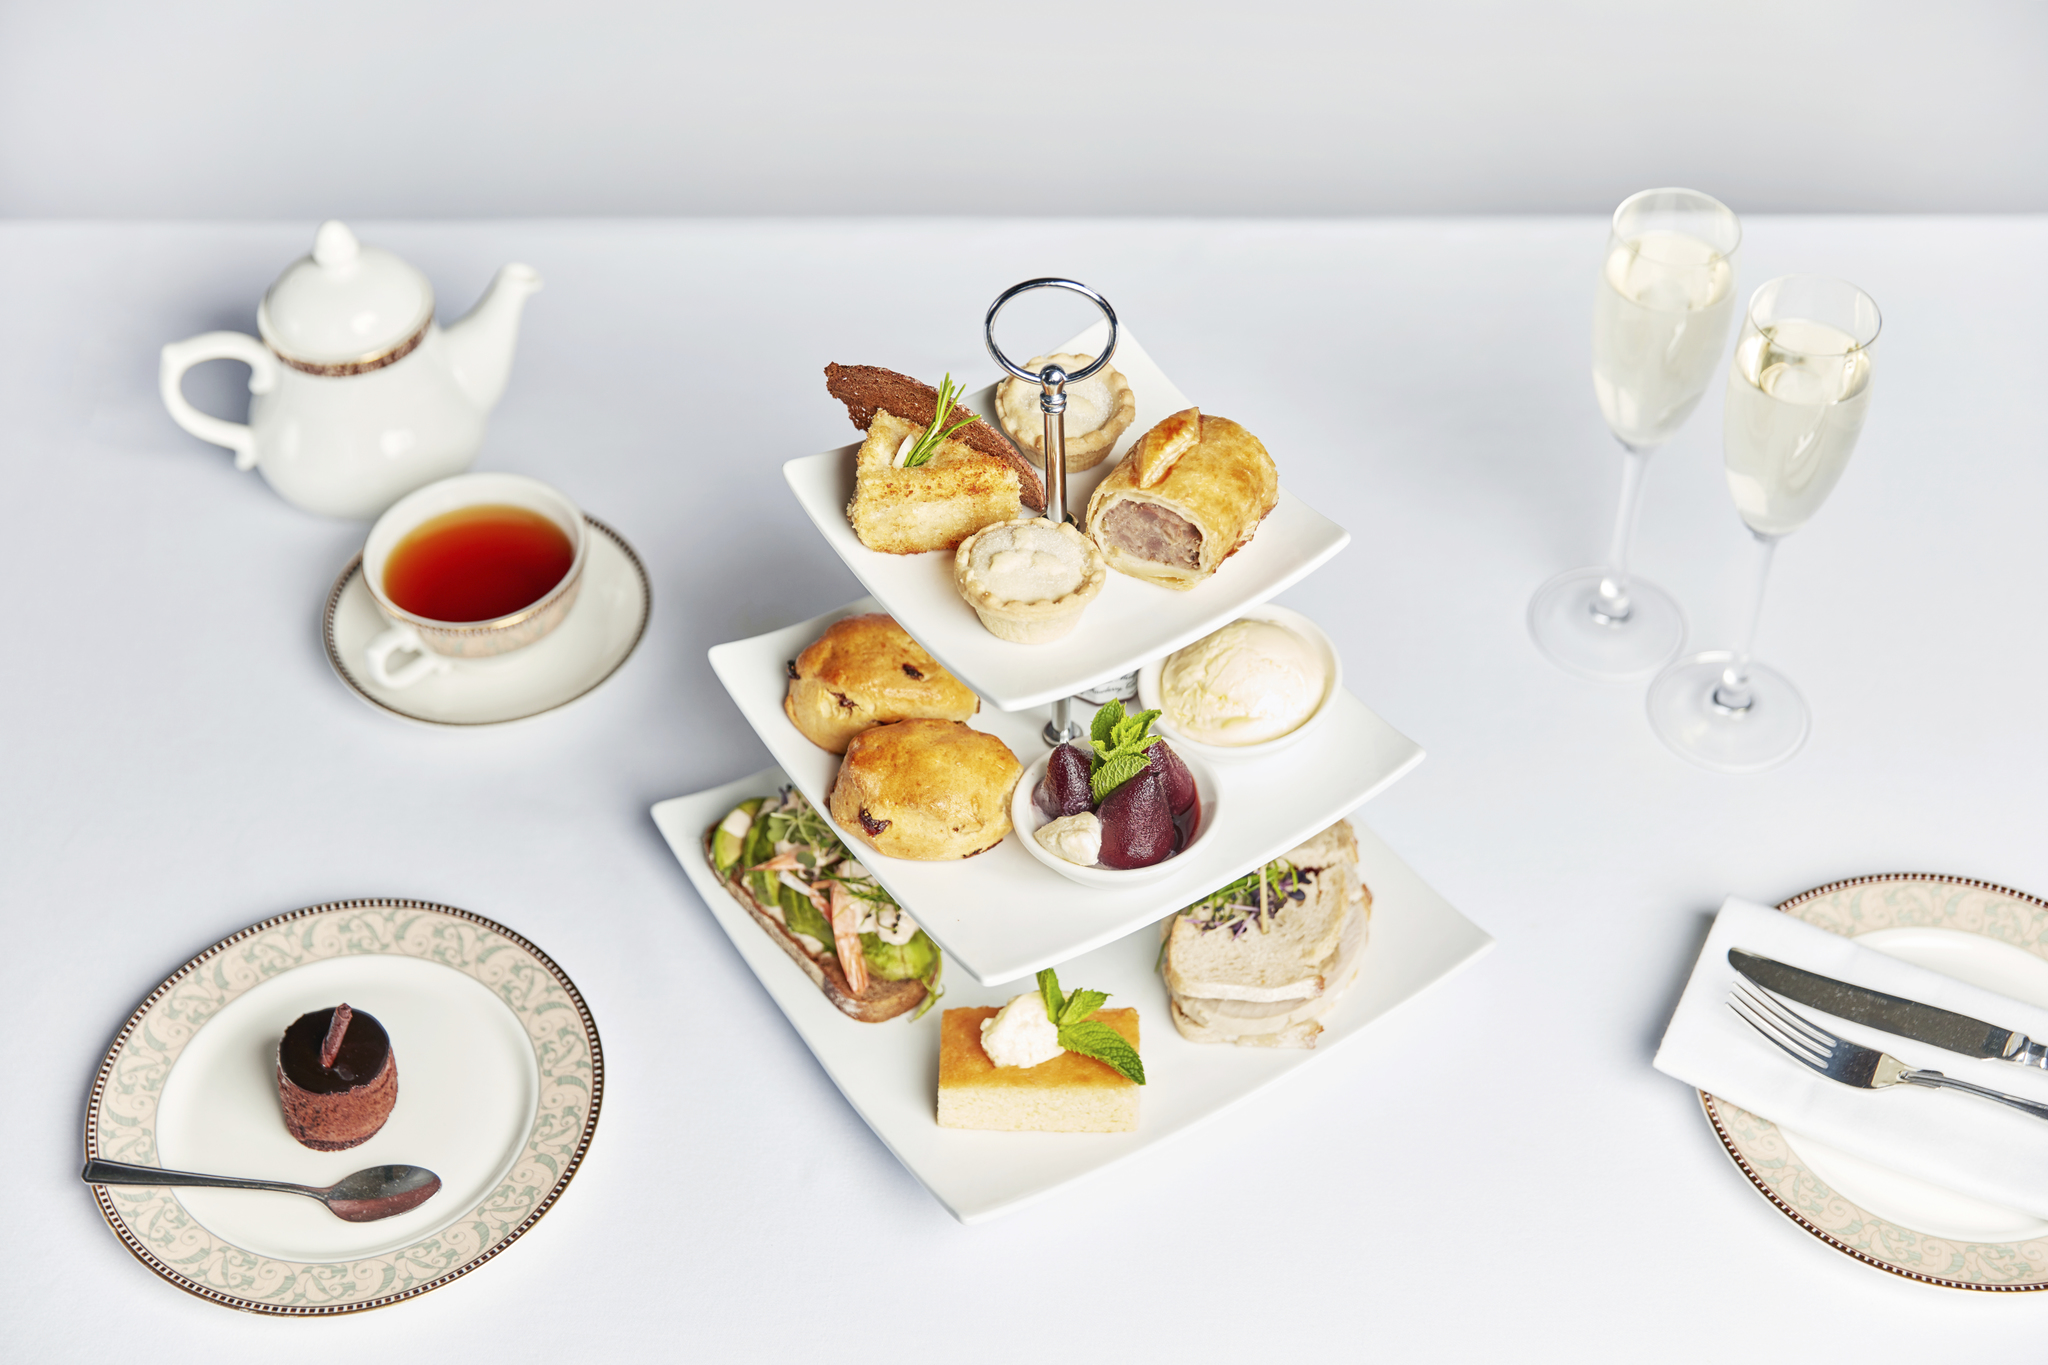 Image of Afternoon Tea at Breadsall Priory Marriott Hotel & Country Club